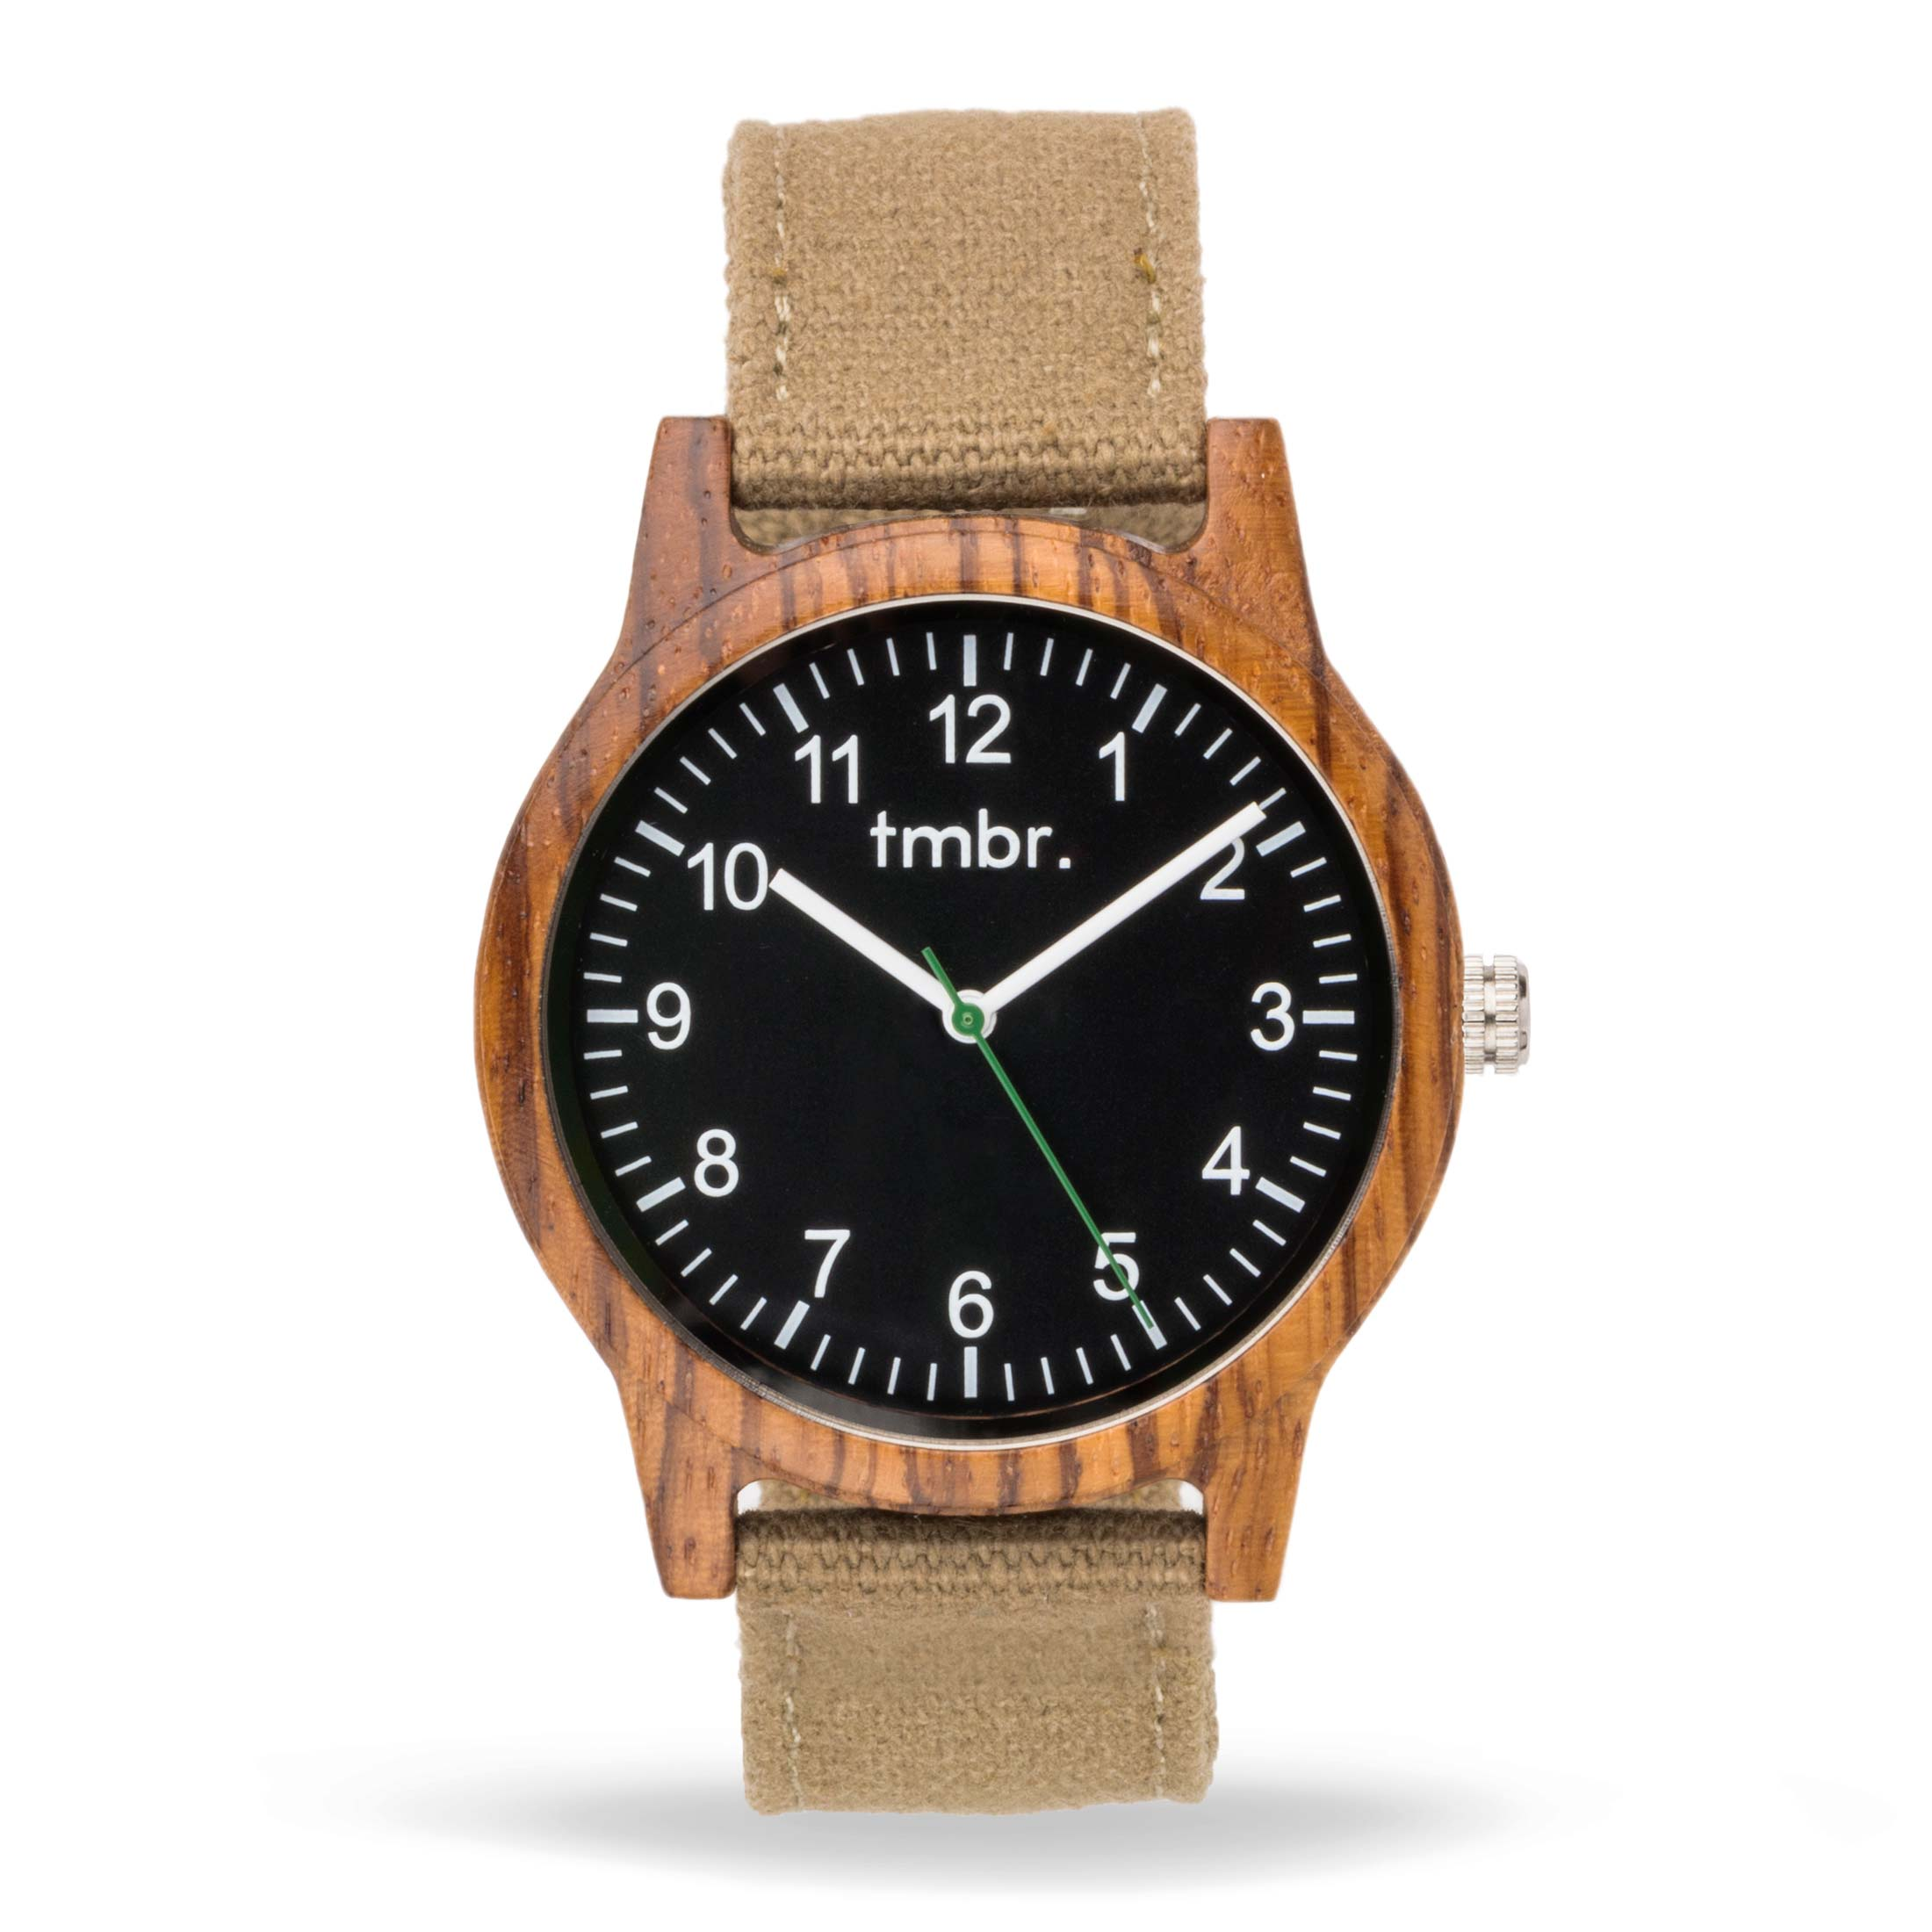 Tmbr Ridgeline Wood Watch - Zebrawood